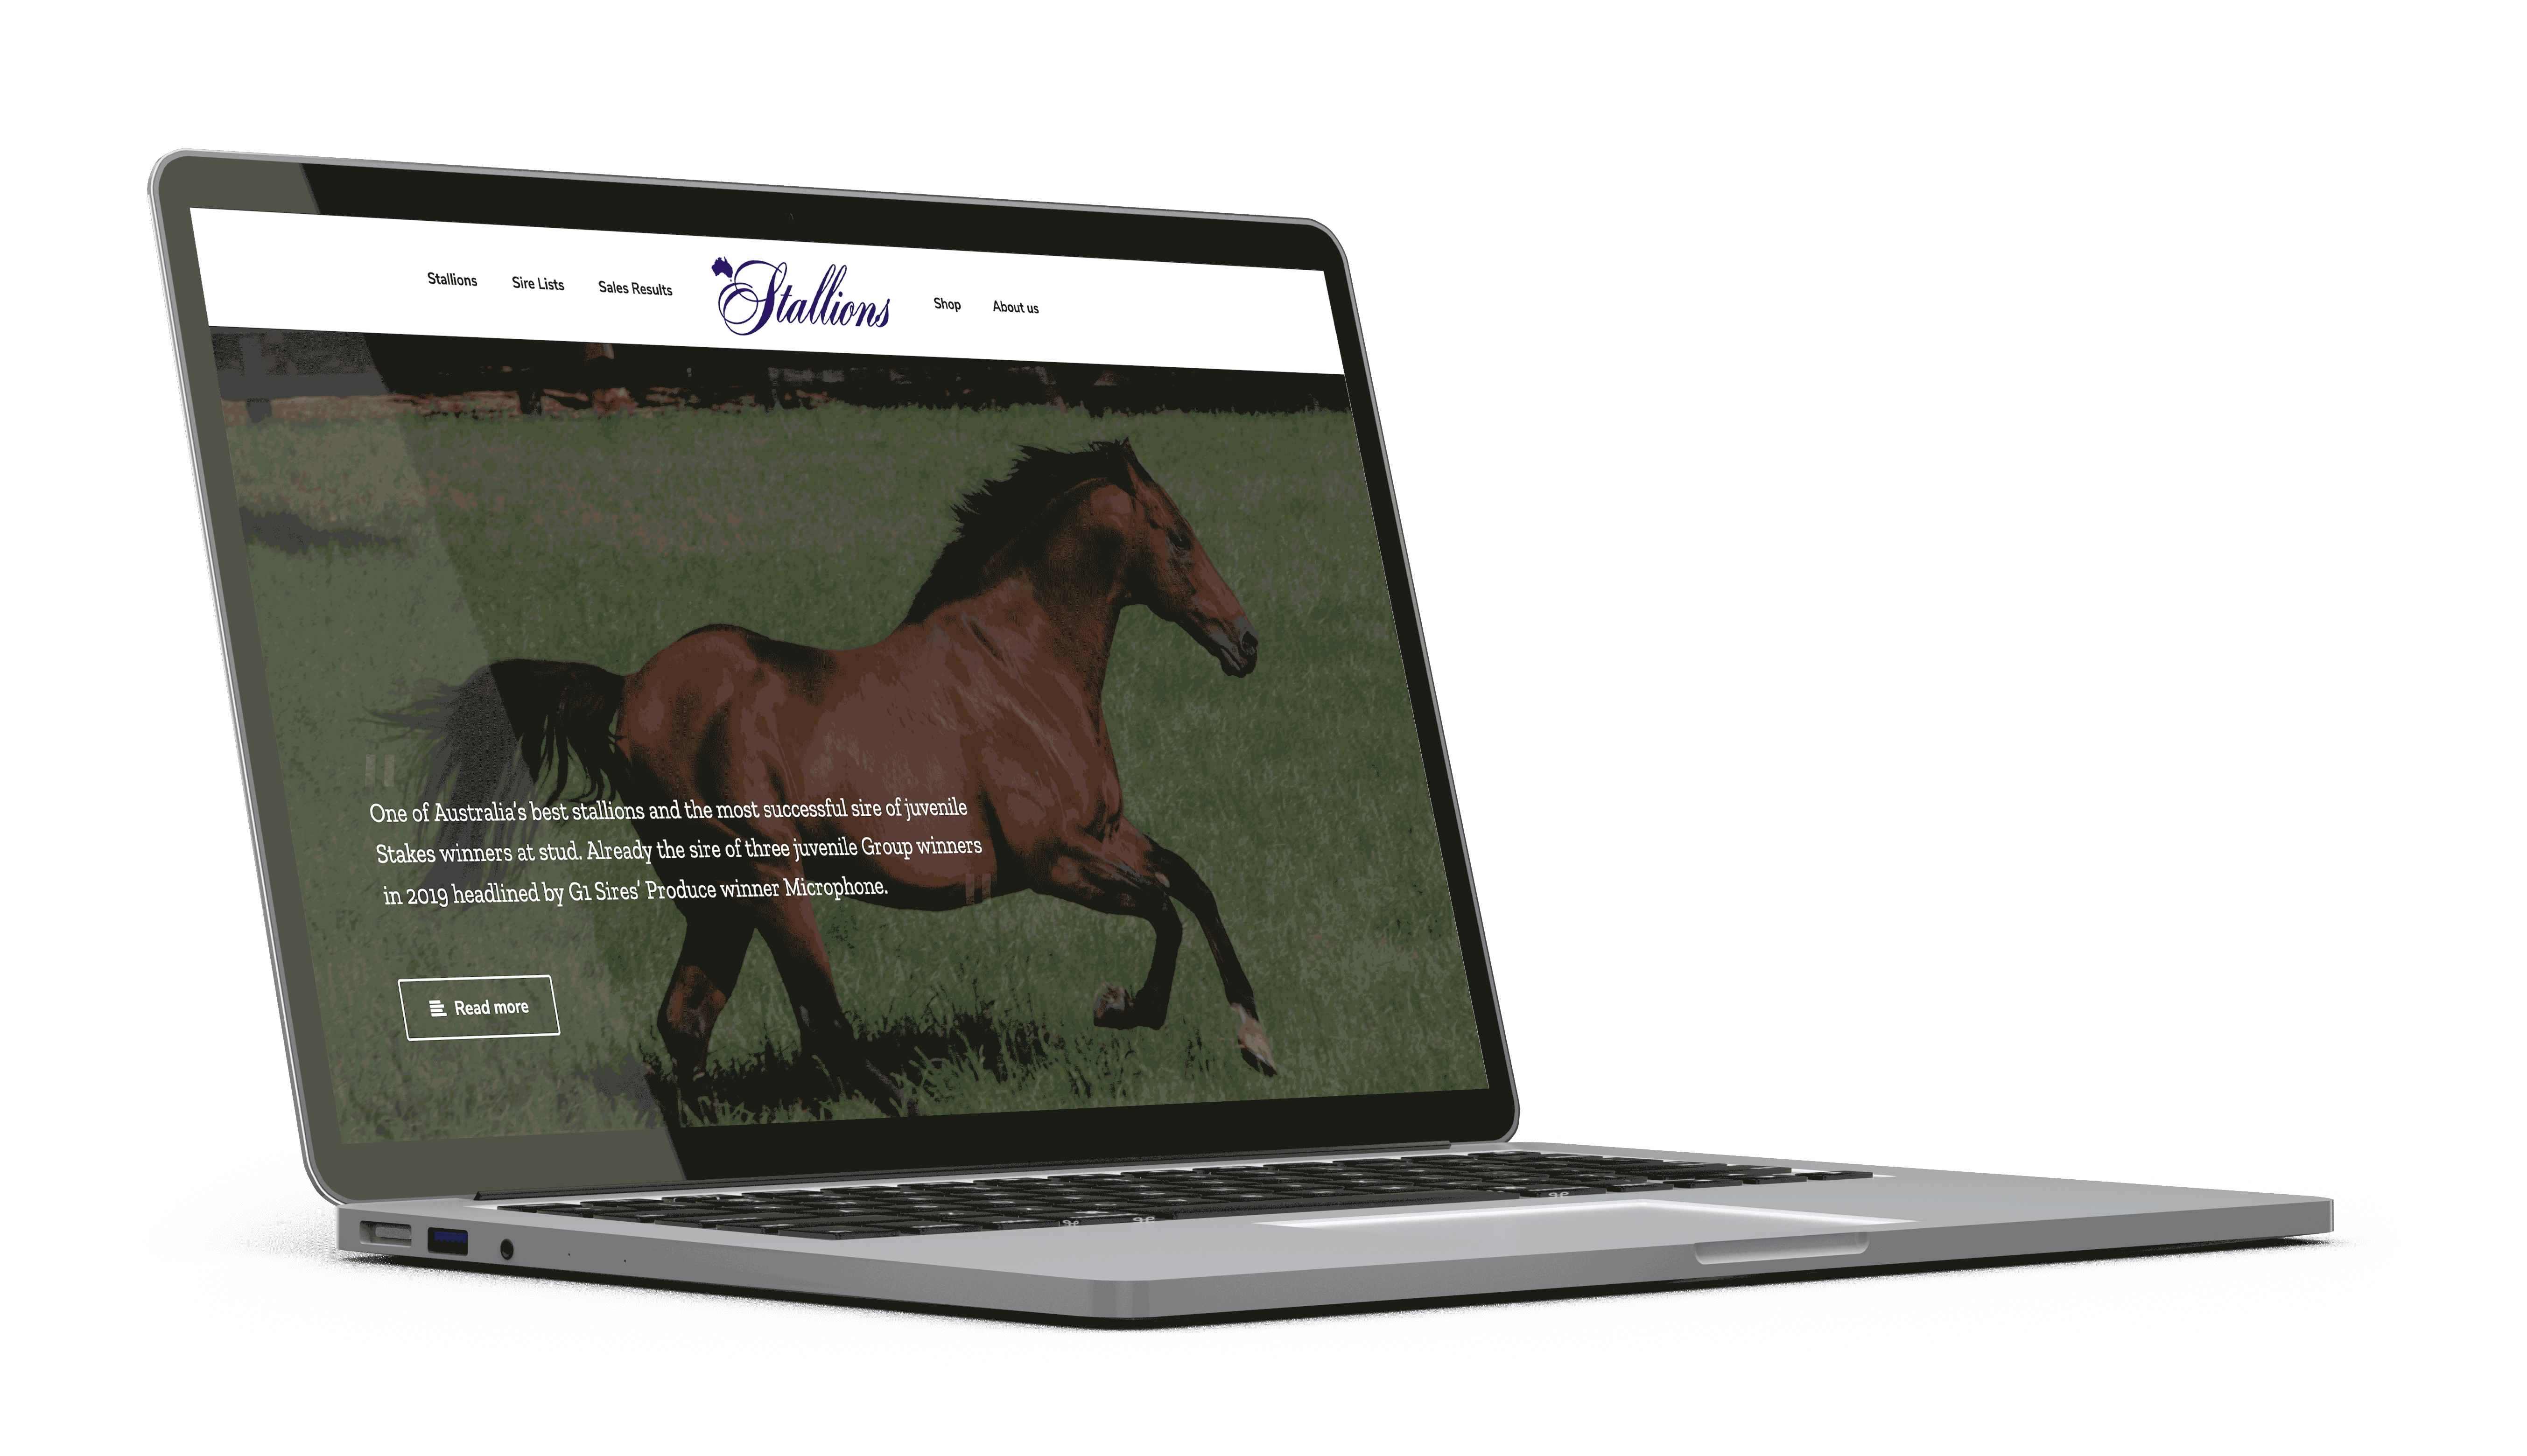 http://www.stallions.com.au/wp-content/uploads/2020/03/laptop-only.png